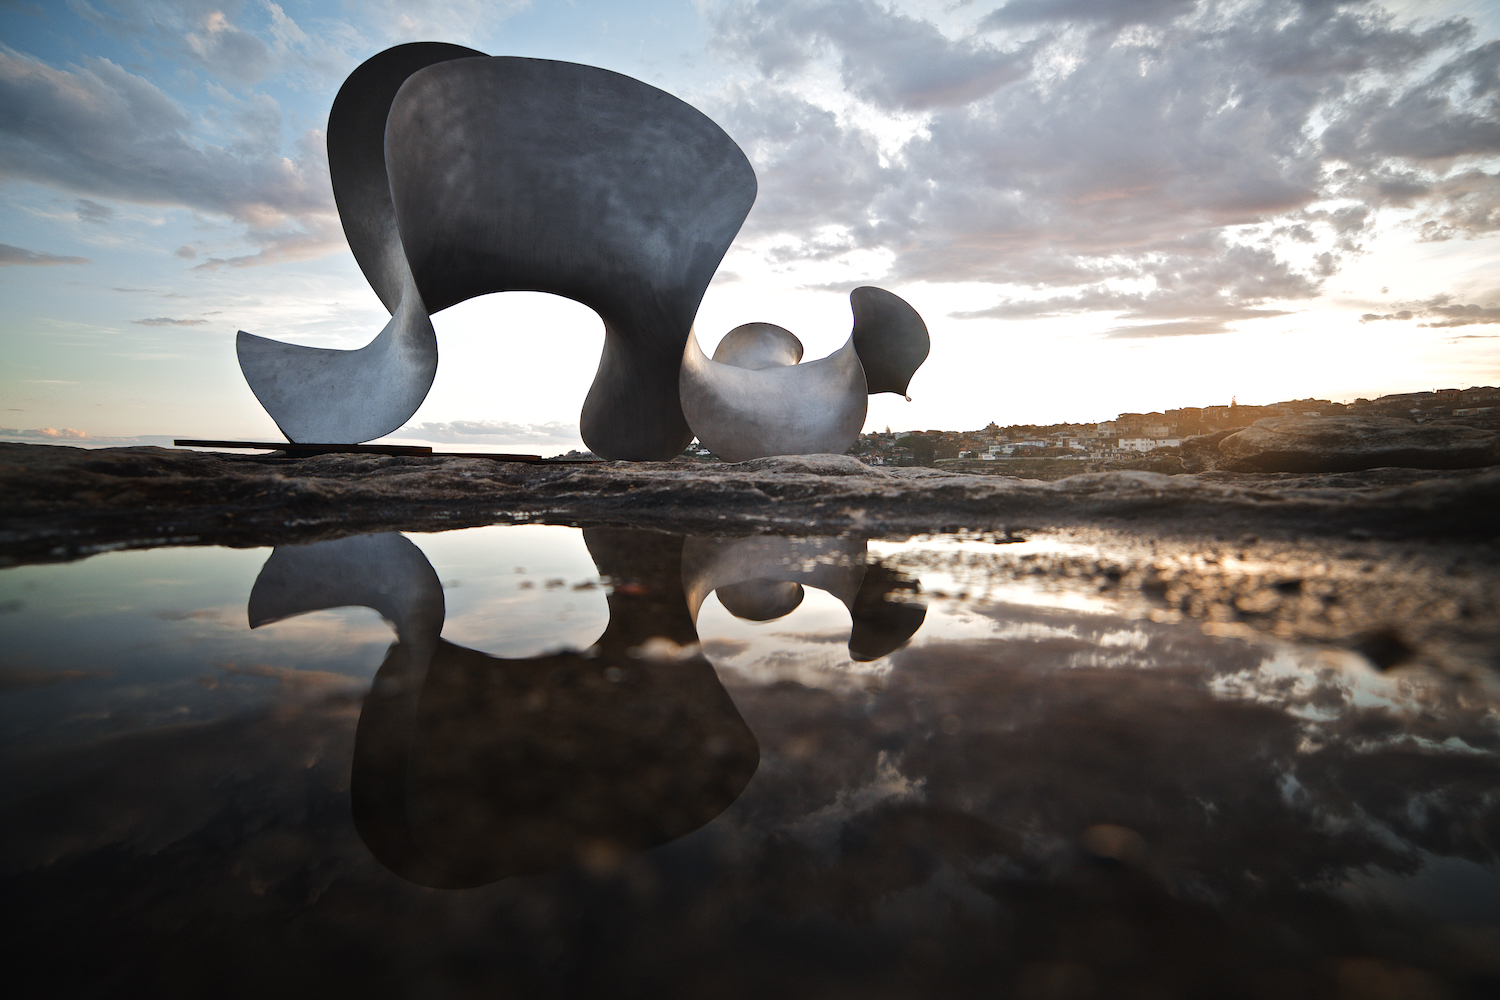 Benjamin Storch, undulation, Sculpture by the Sea, Bondi 2015. Photo by Jarrad Seng